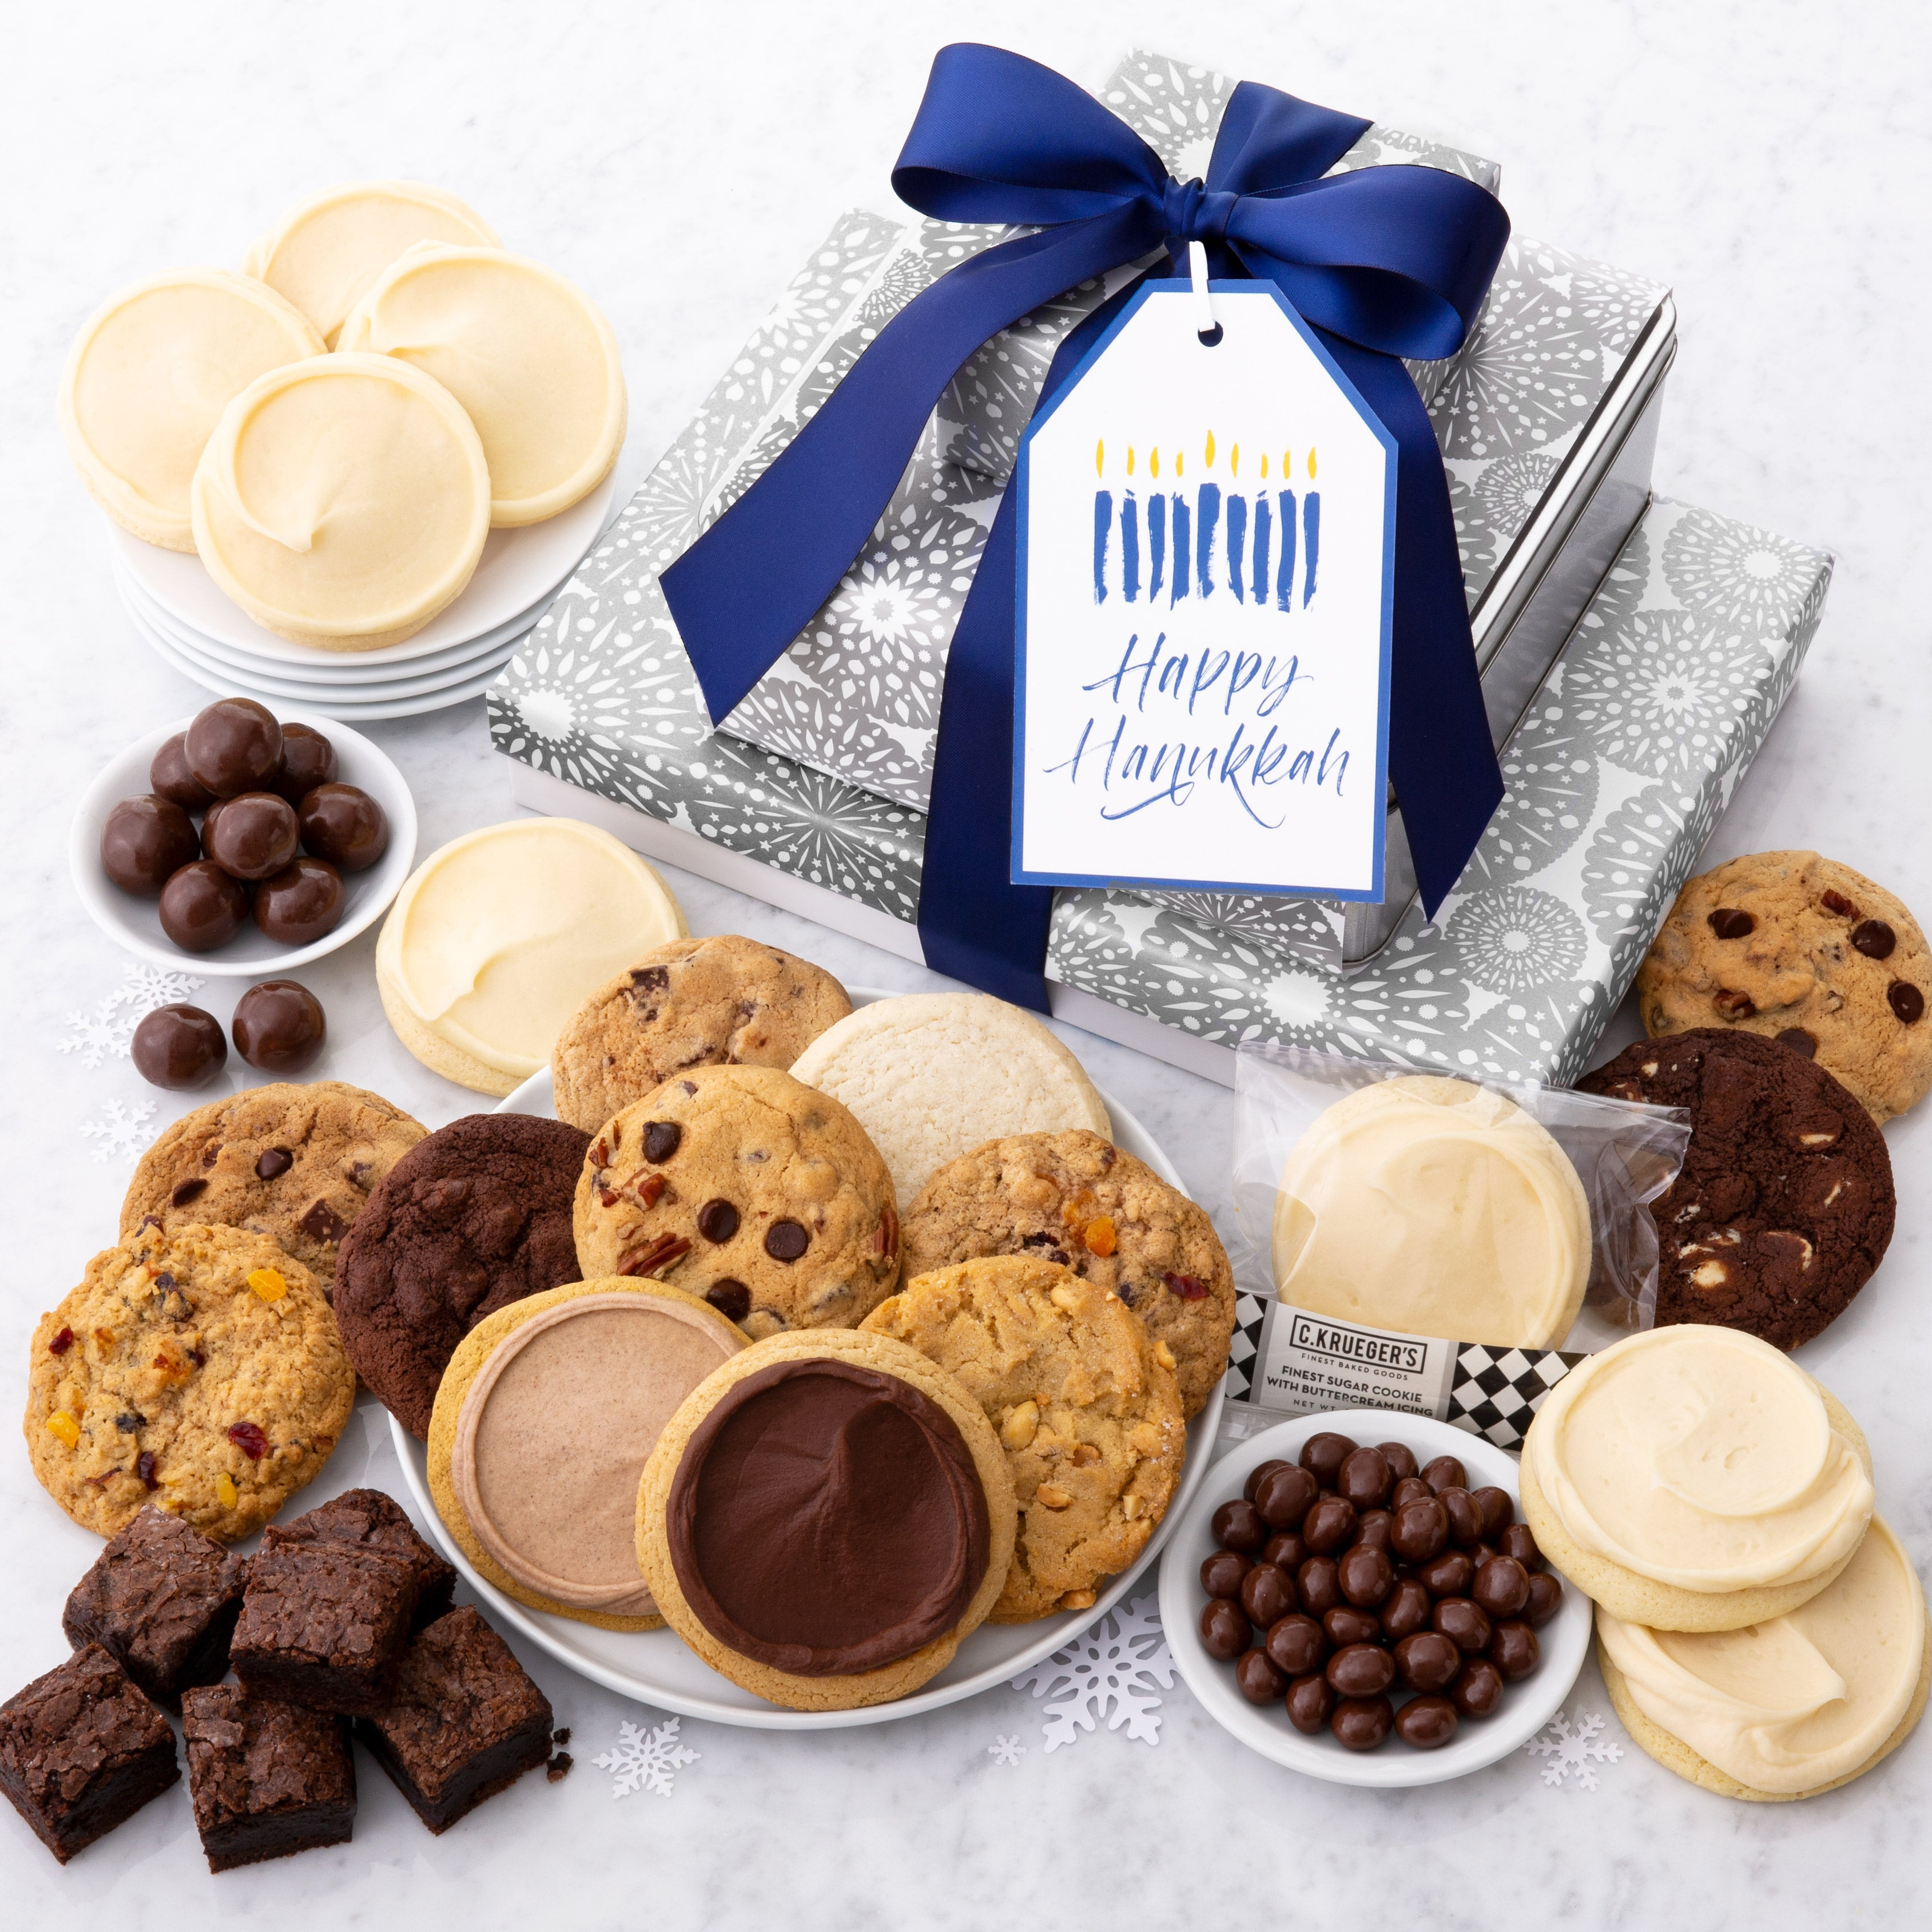 Happy Hanukkah Gift Stack - Cookies & Snacks